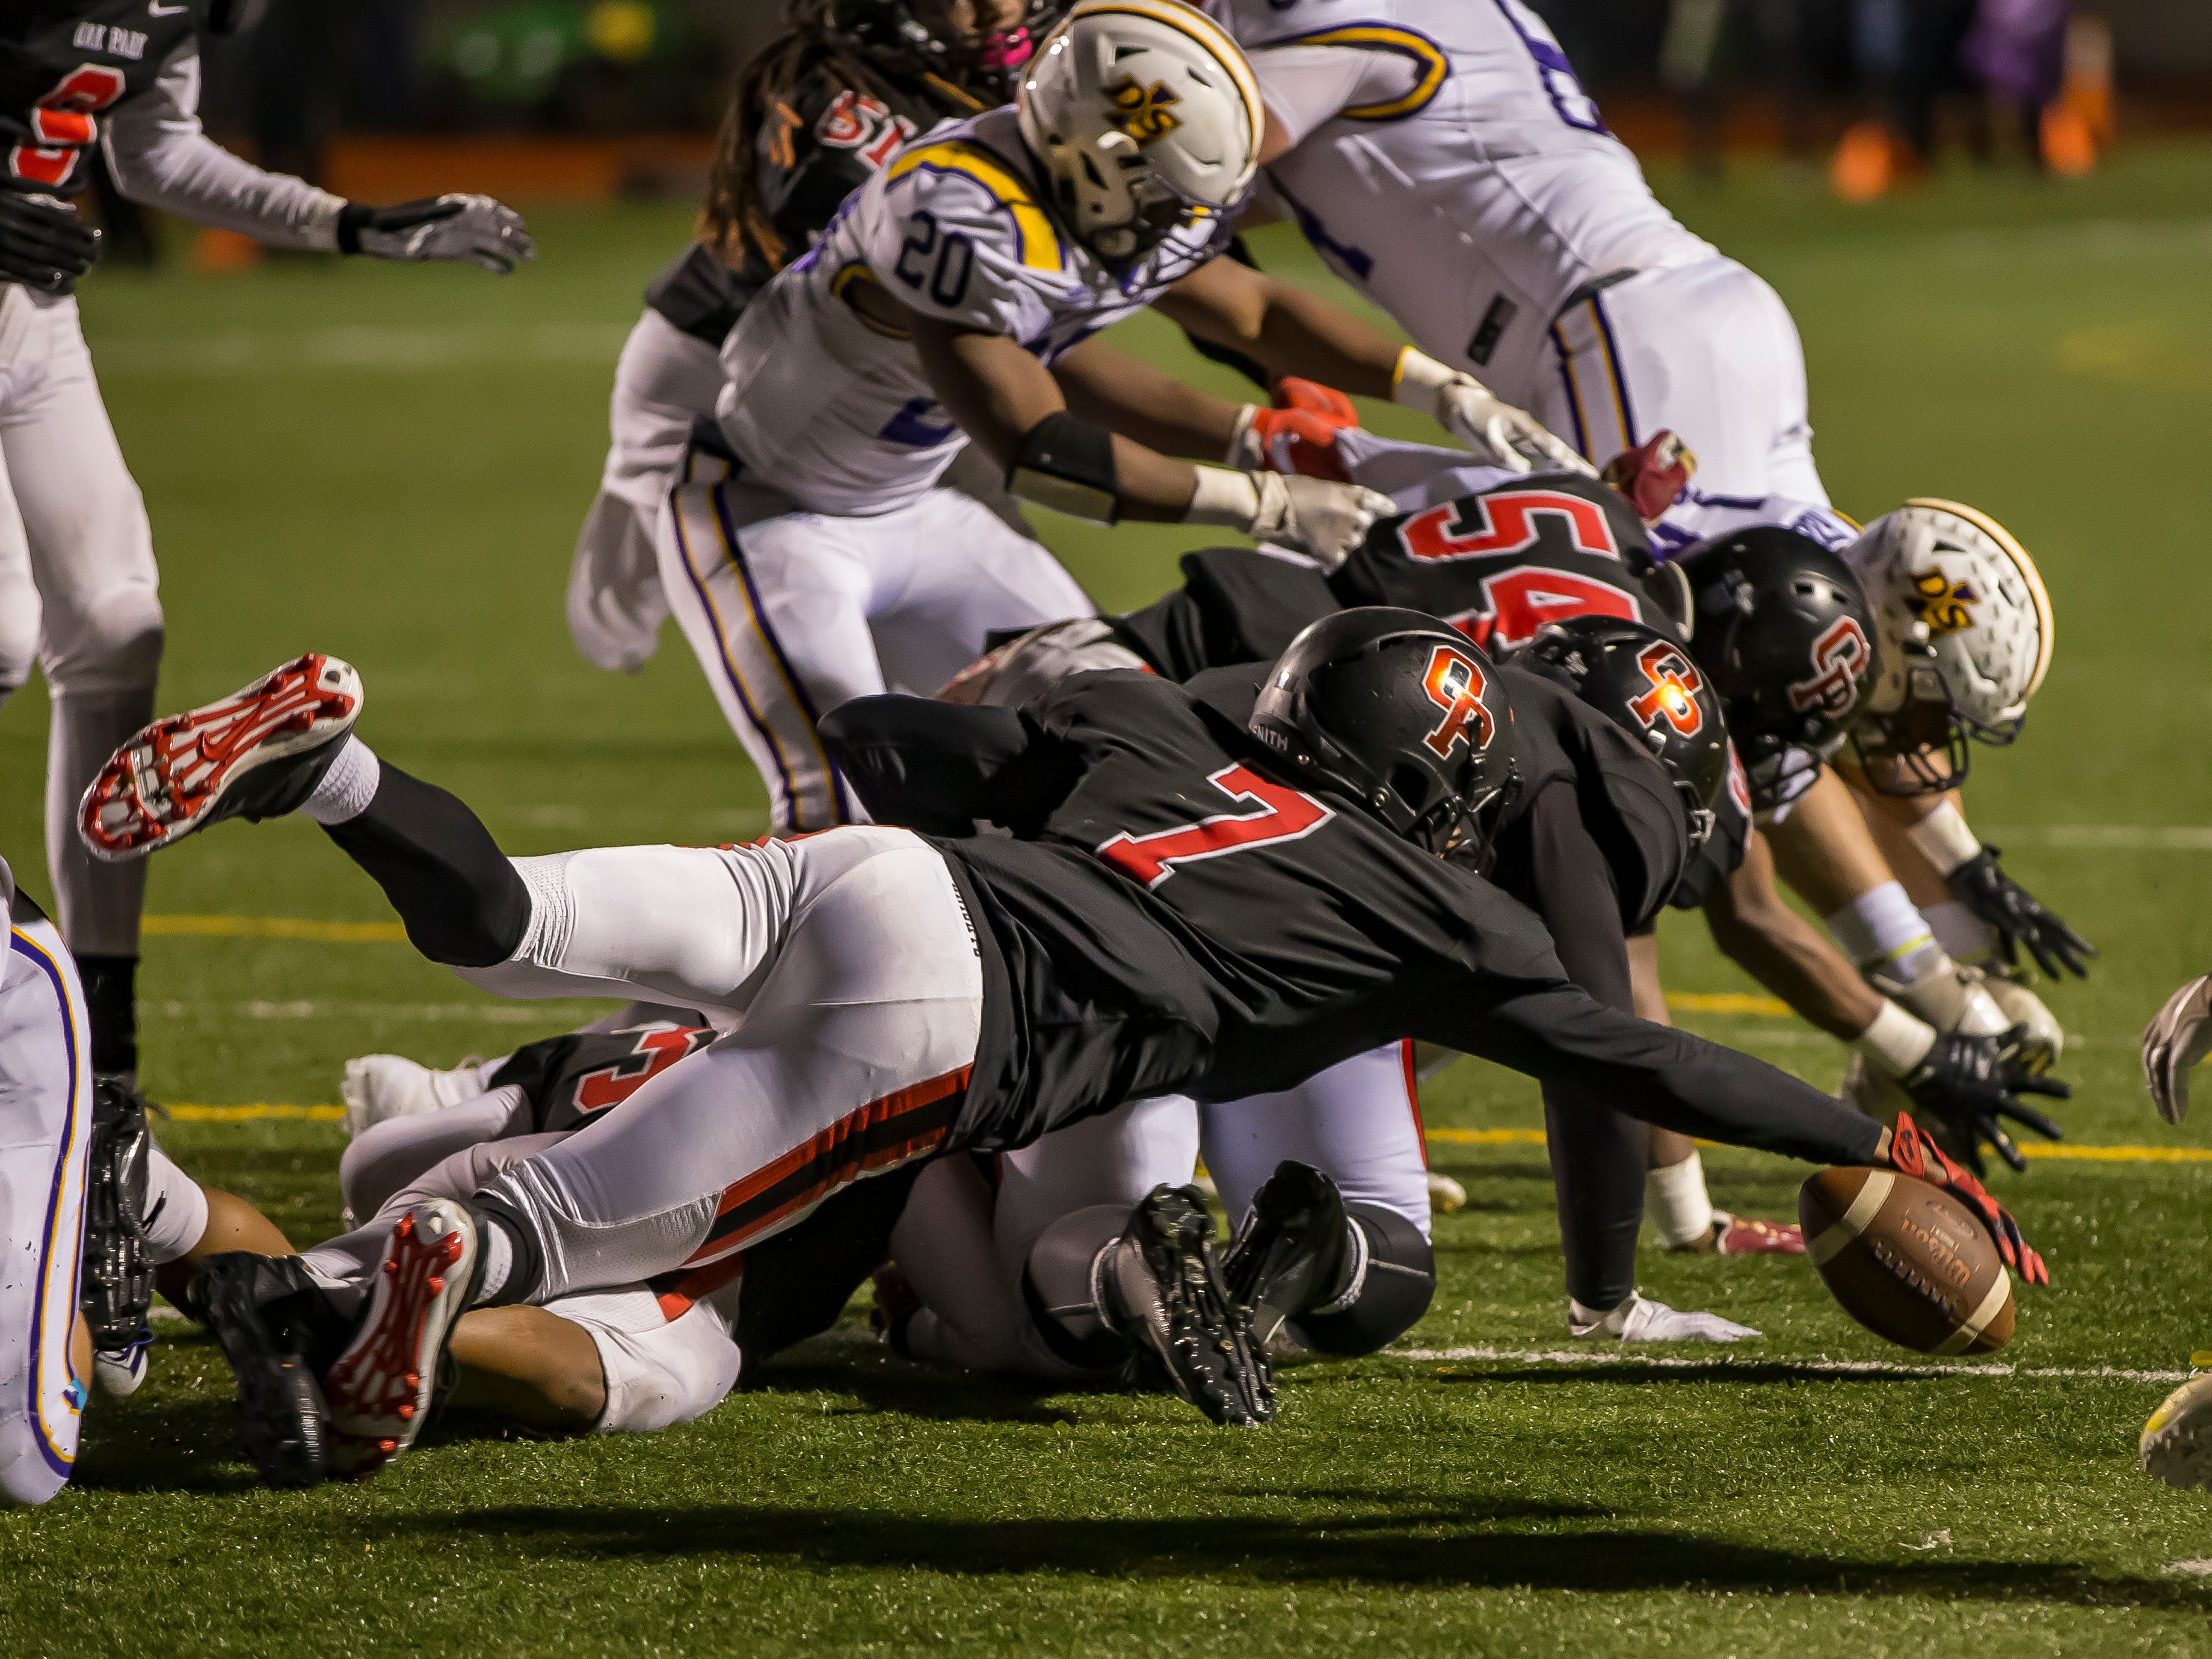 Oak Park's Frank Black (7) dives on a fumble in the fourth quarter.